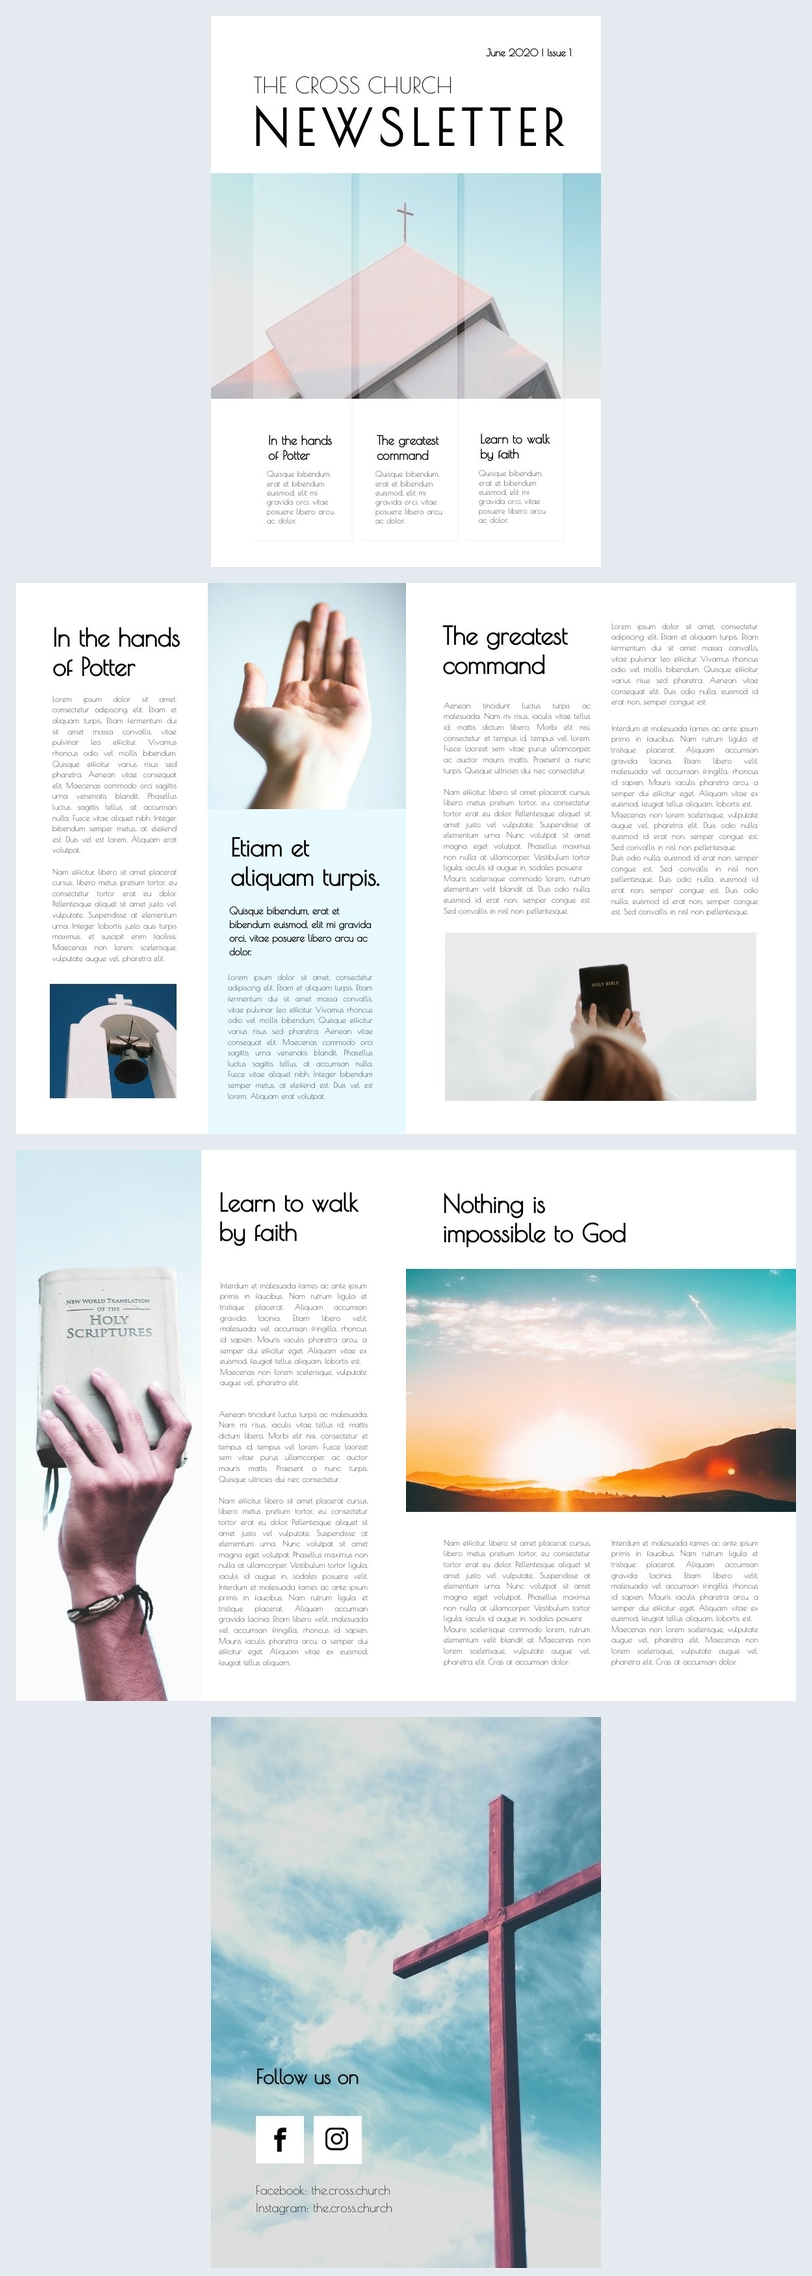 Church Newsletter Design Template Example